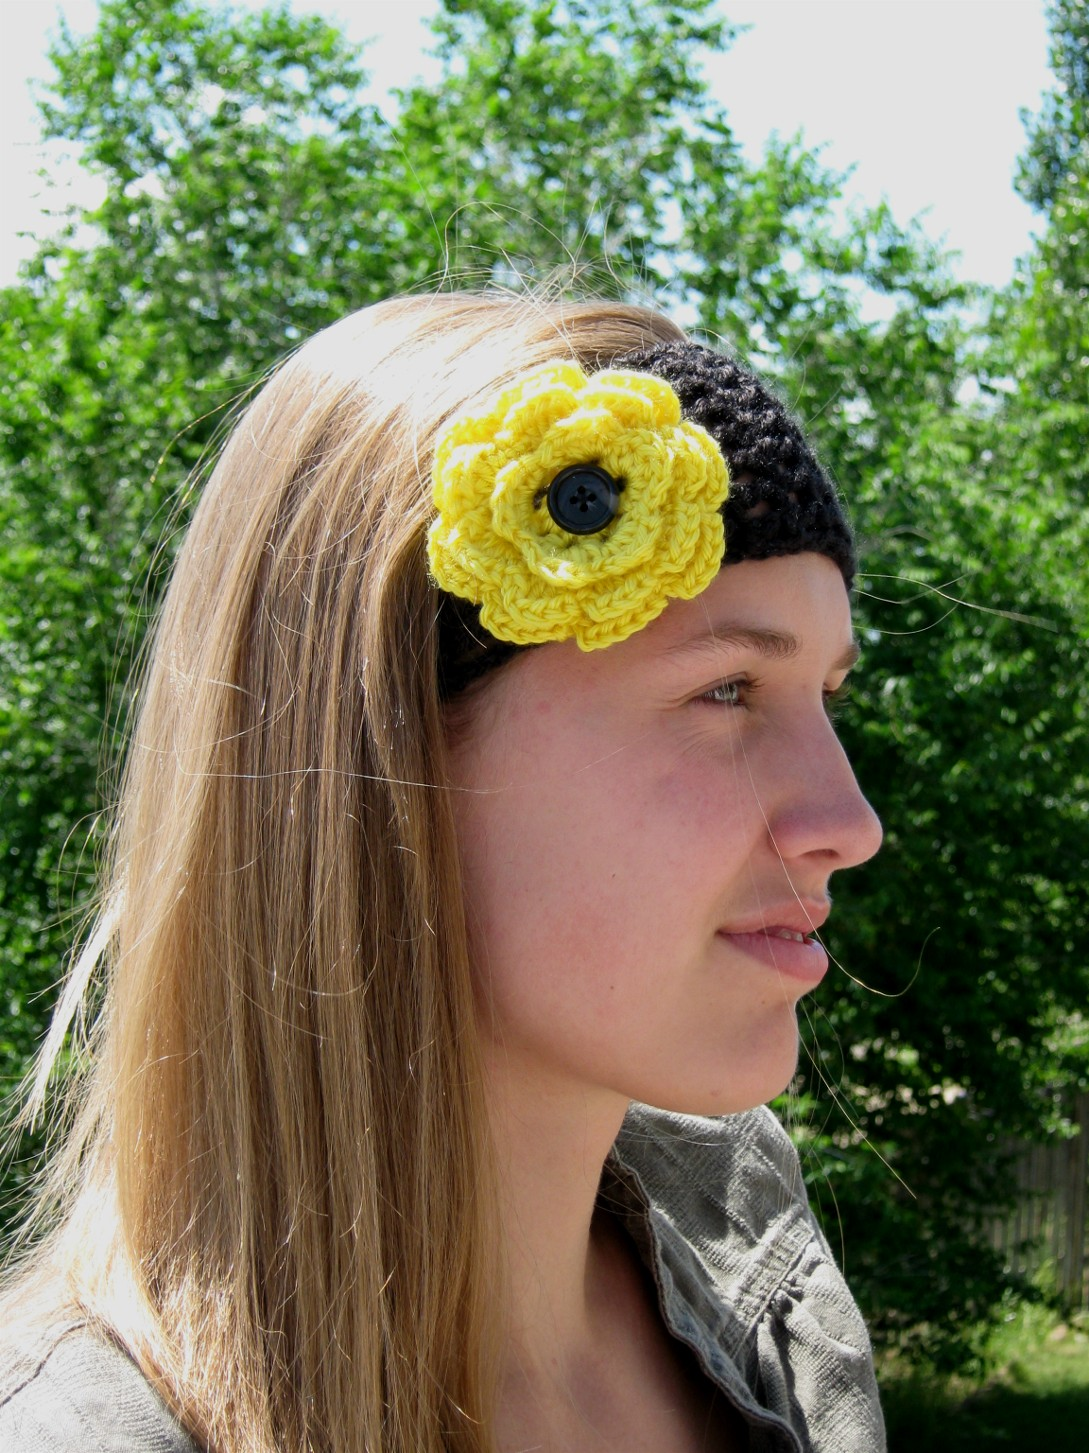 Crocheting A Headband : How to crochet a headband video, part 1